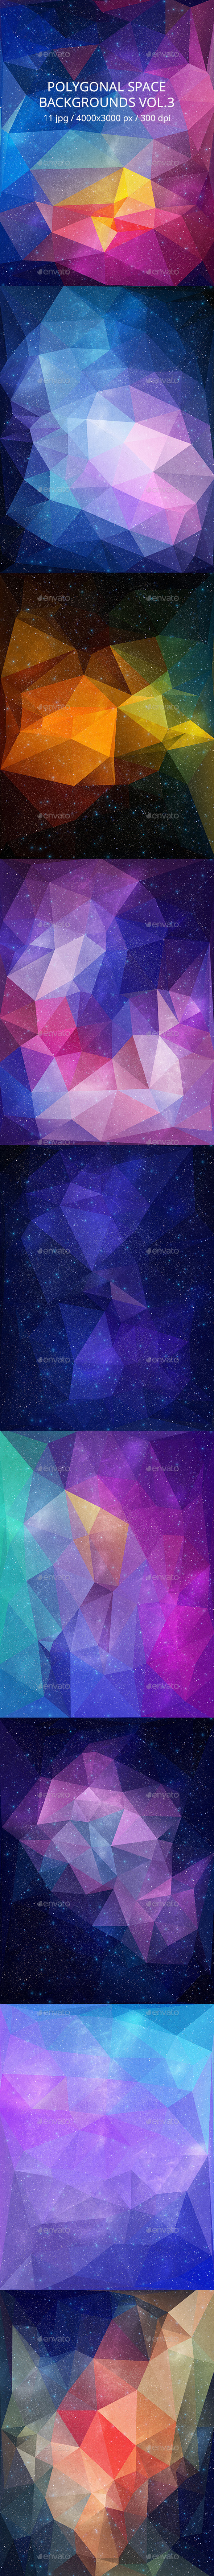 GraphicRiver Polygonal Space Backgrounds Vol.3 10936737